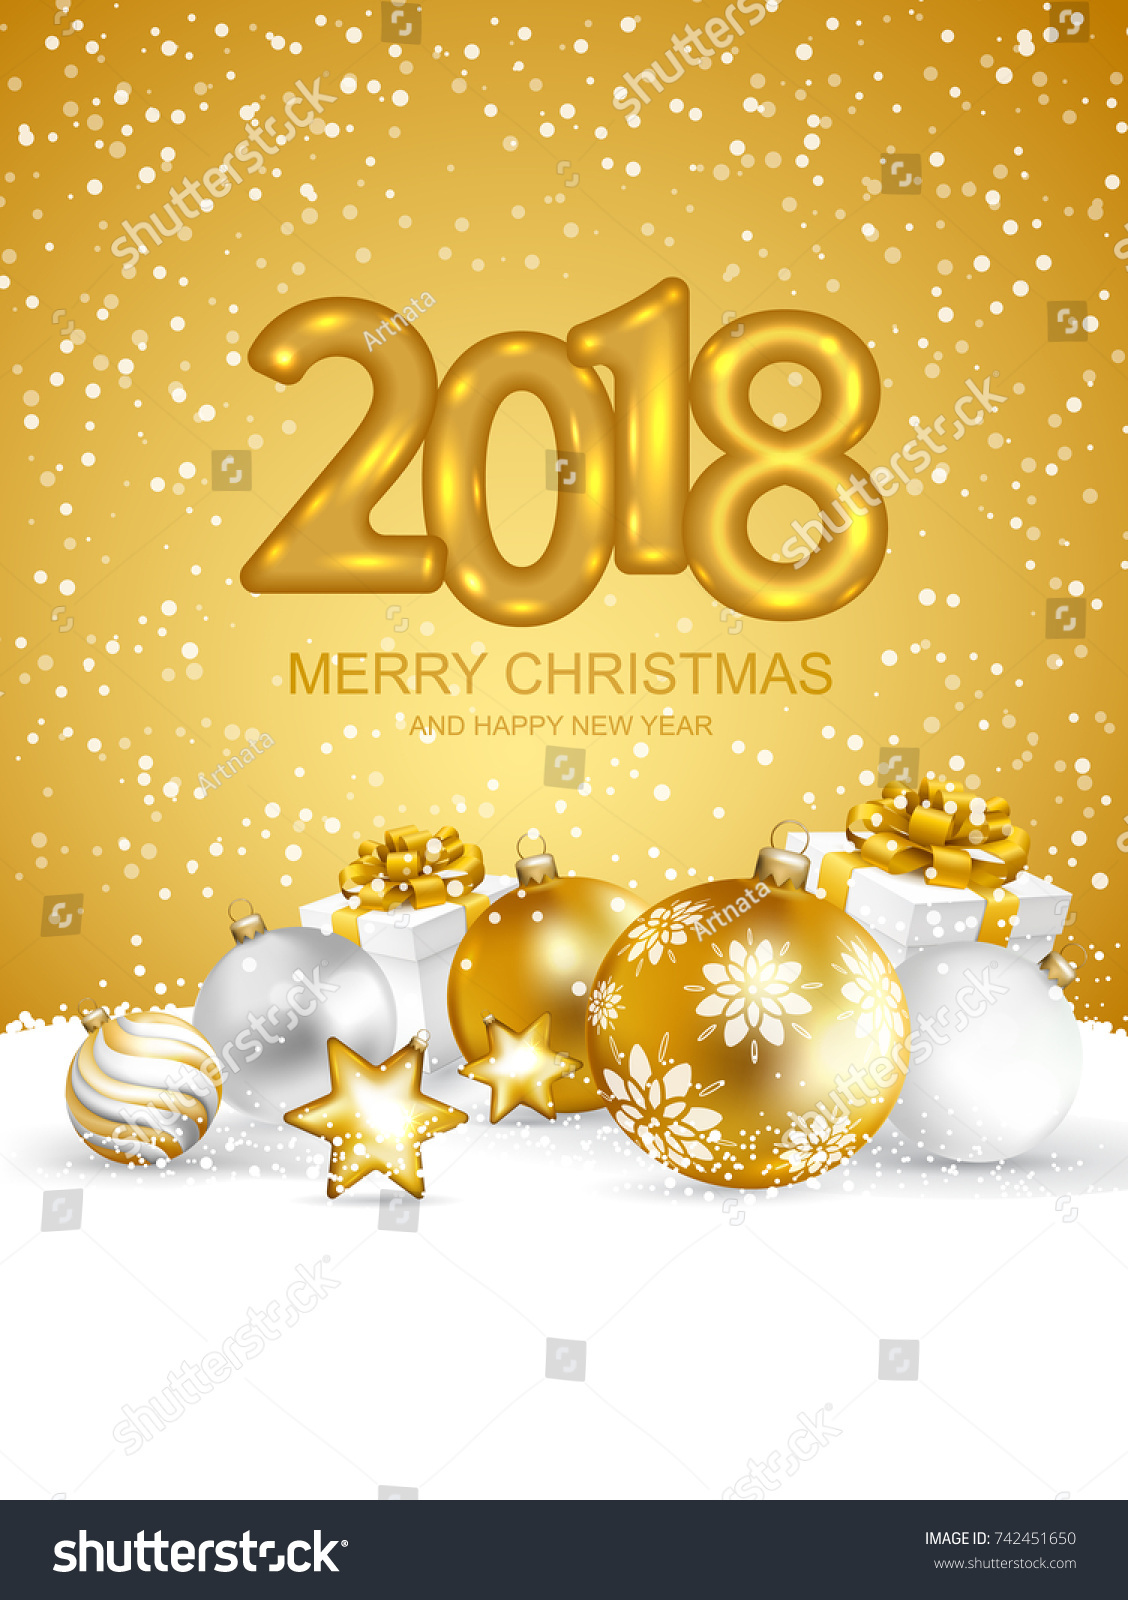 2018 merry christmas and happy new year card with christmas balls and gift boxes on snow